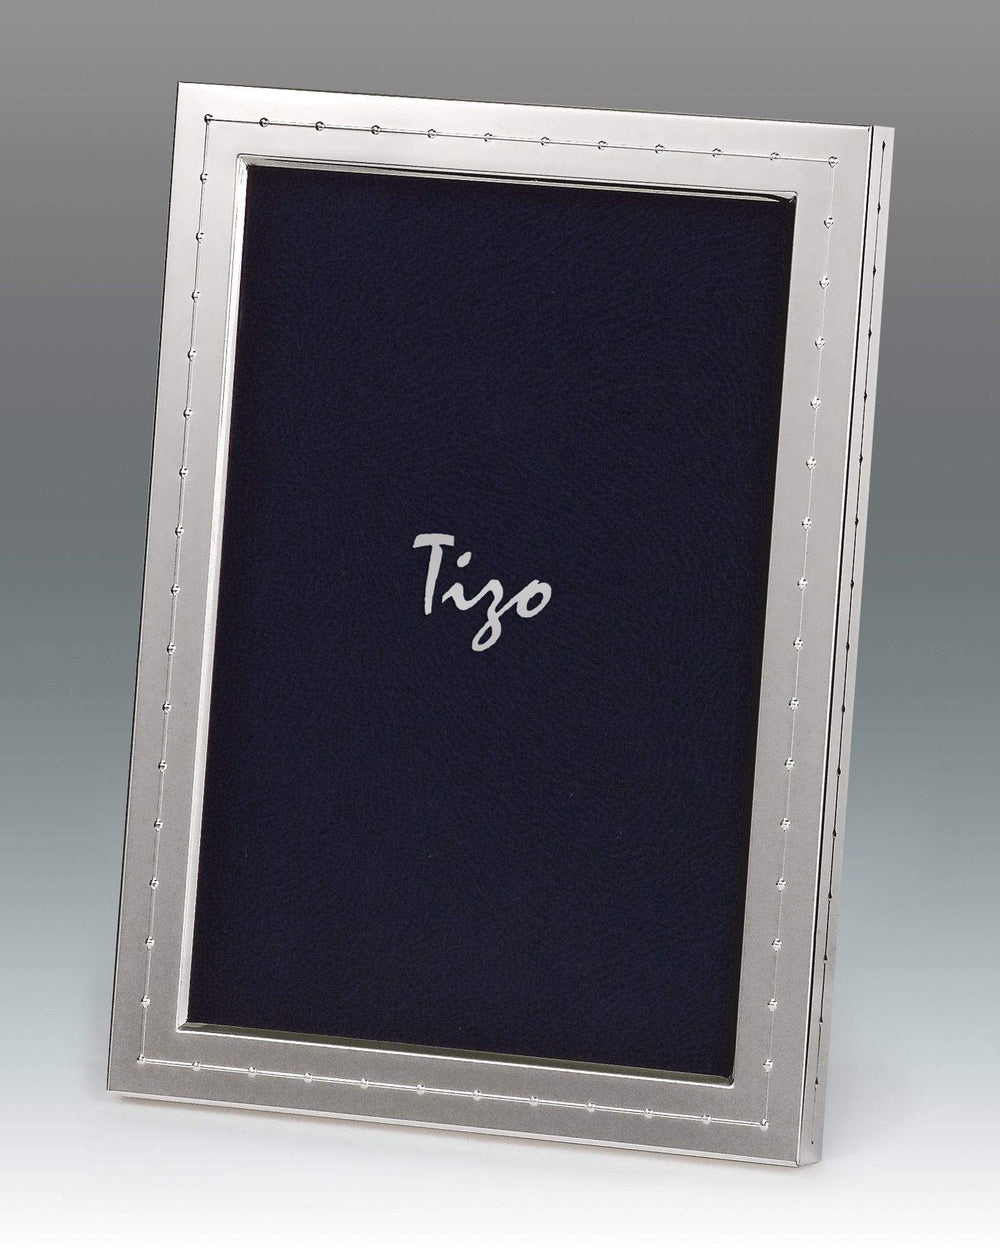 Tizo 8x10 Mid Garland Border Silverplate Frame